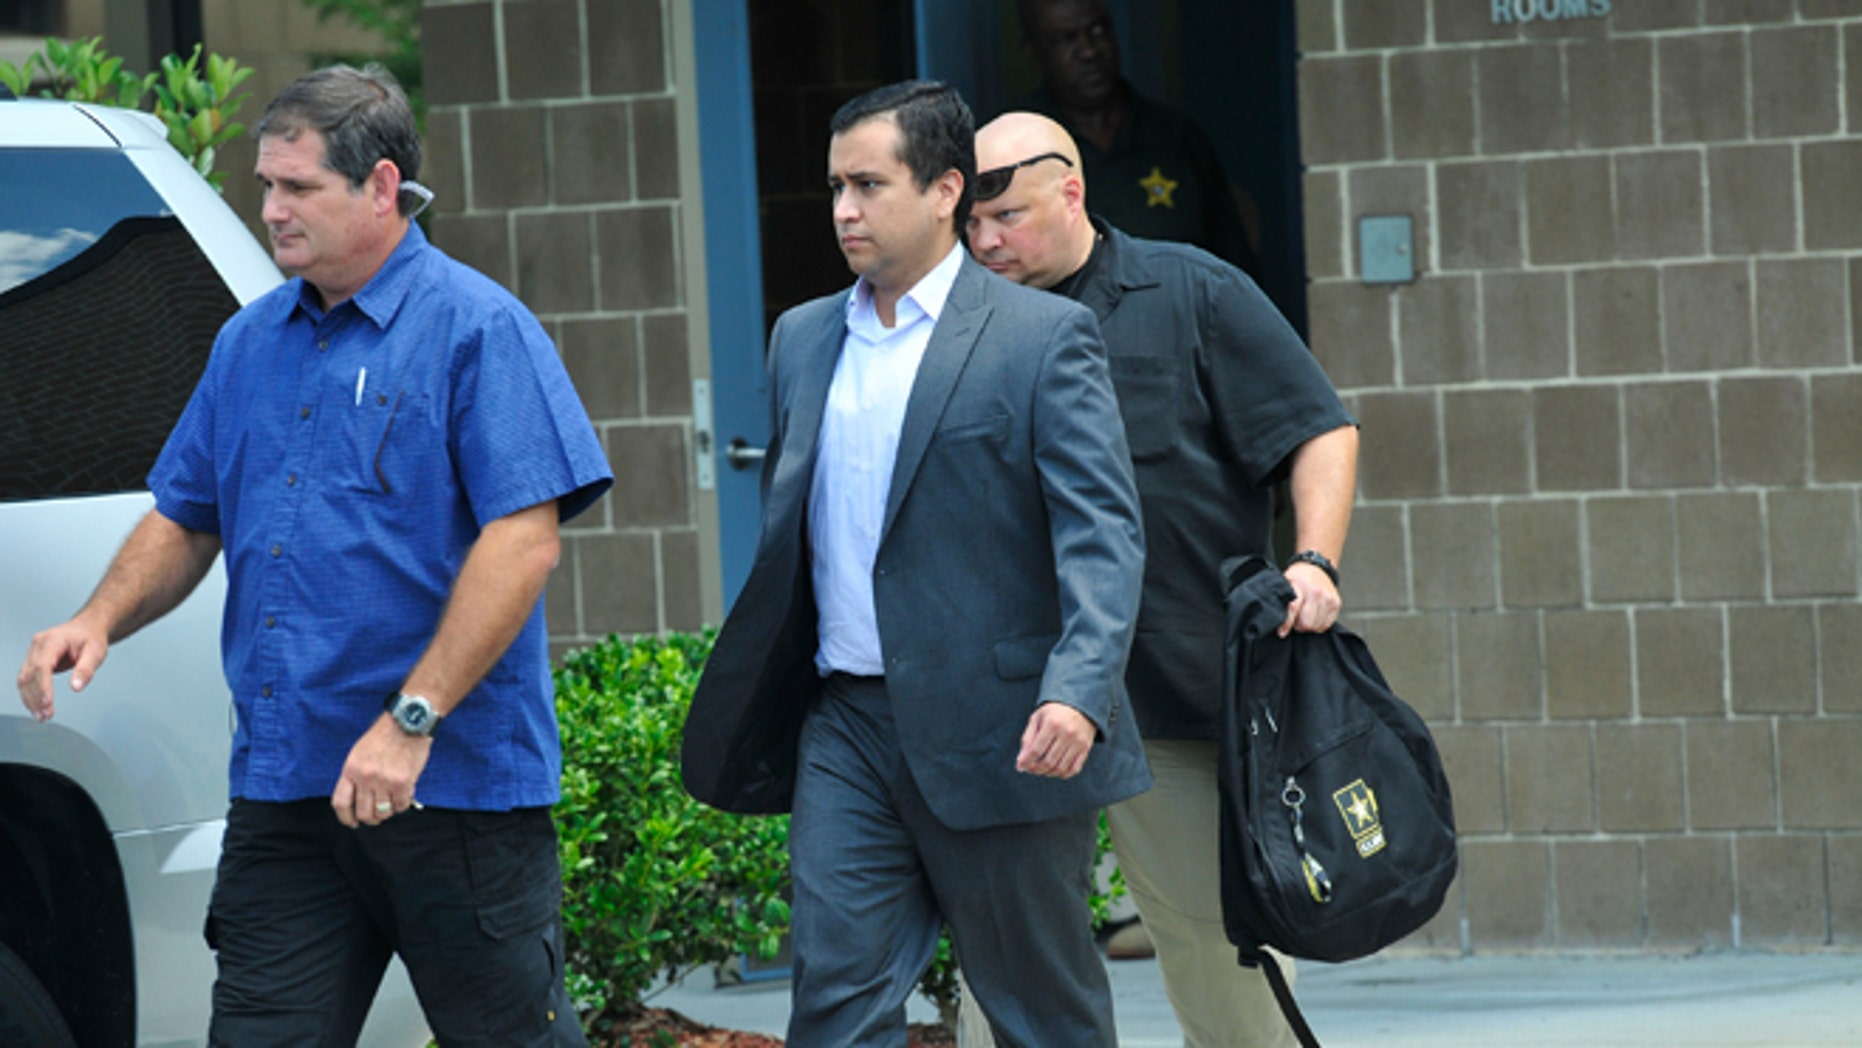 SANFORD, FL- JULY 6: George Zimmerman (C) leaves Seminole County Jail after posting a million dollar bond July 6, 2012 in Sanford, Florida. Zimmerman was charged with second degree murder in the shooting death of Trayvon Martin. (Photo by Roberto Gonzalez/Getty Images)